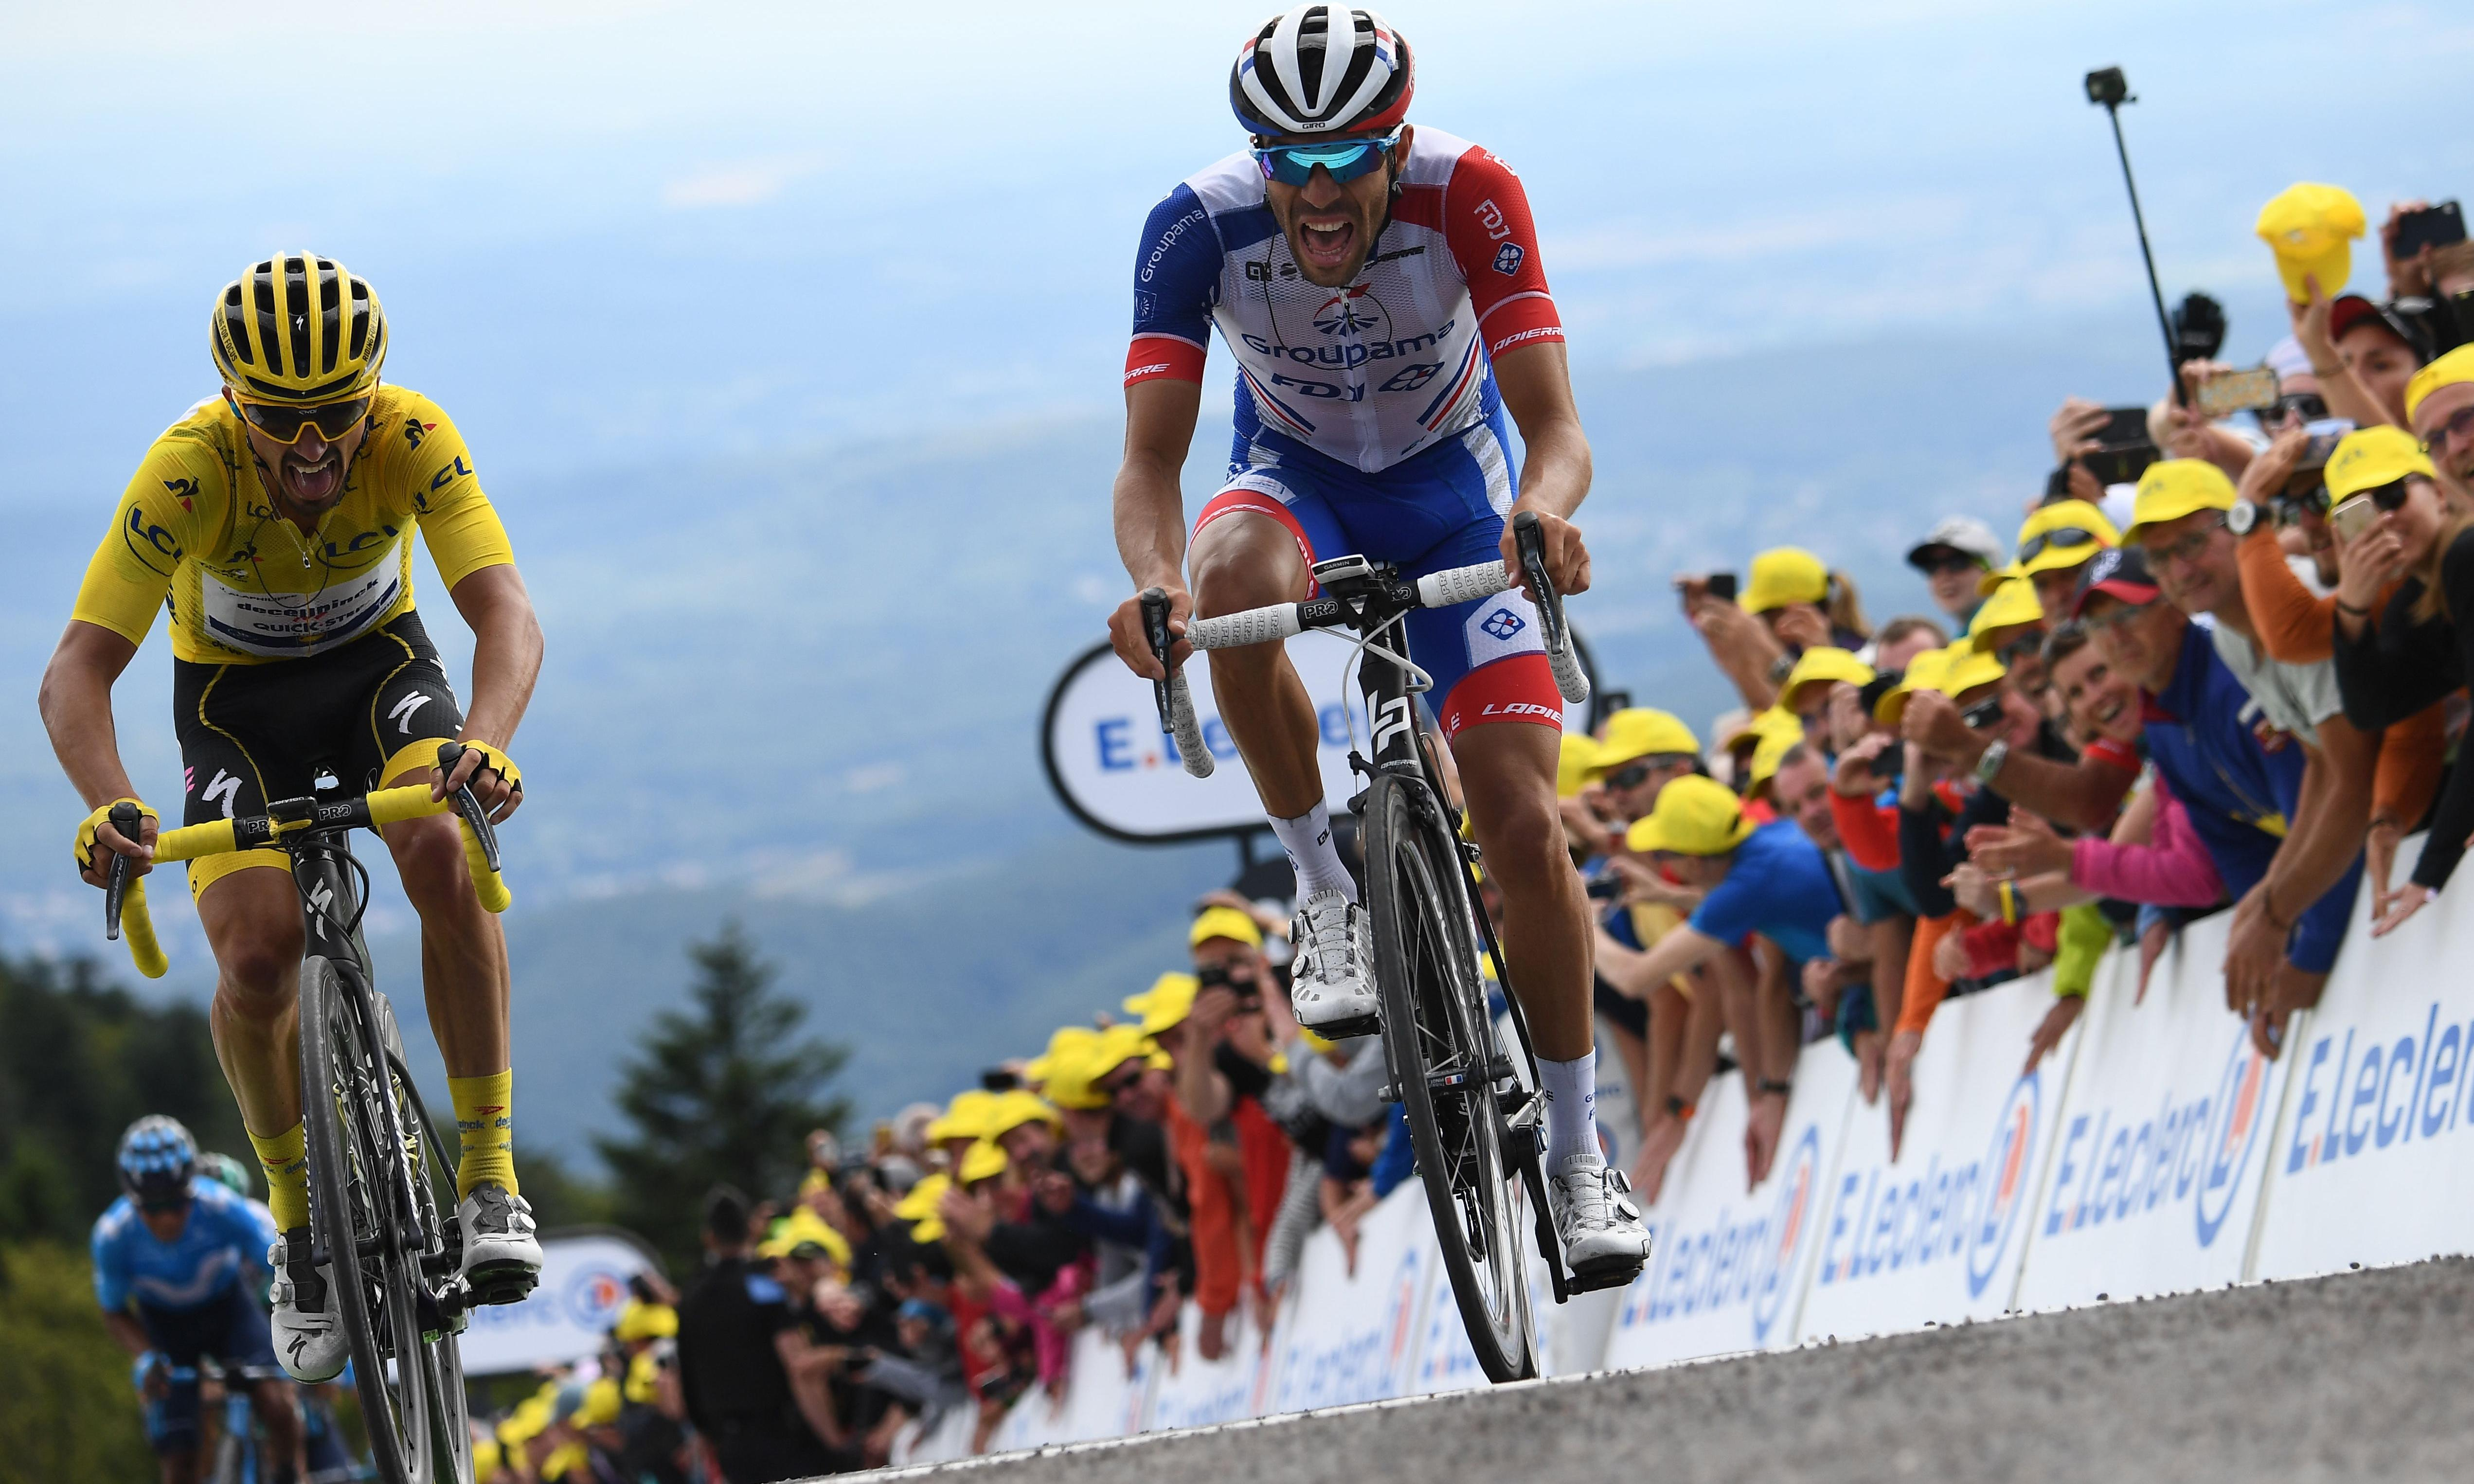 Thibaut Pinot shows fine vintage to lift French spirits in Tour de France